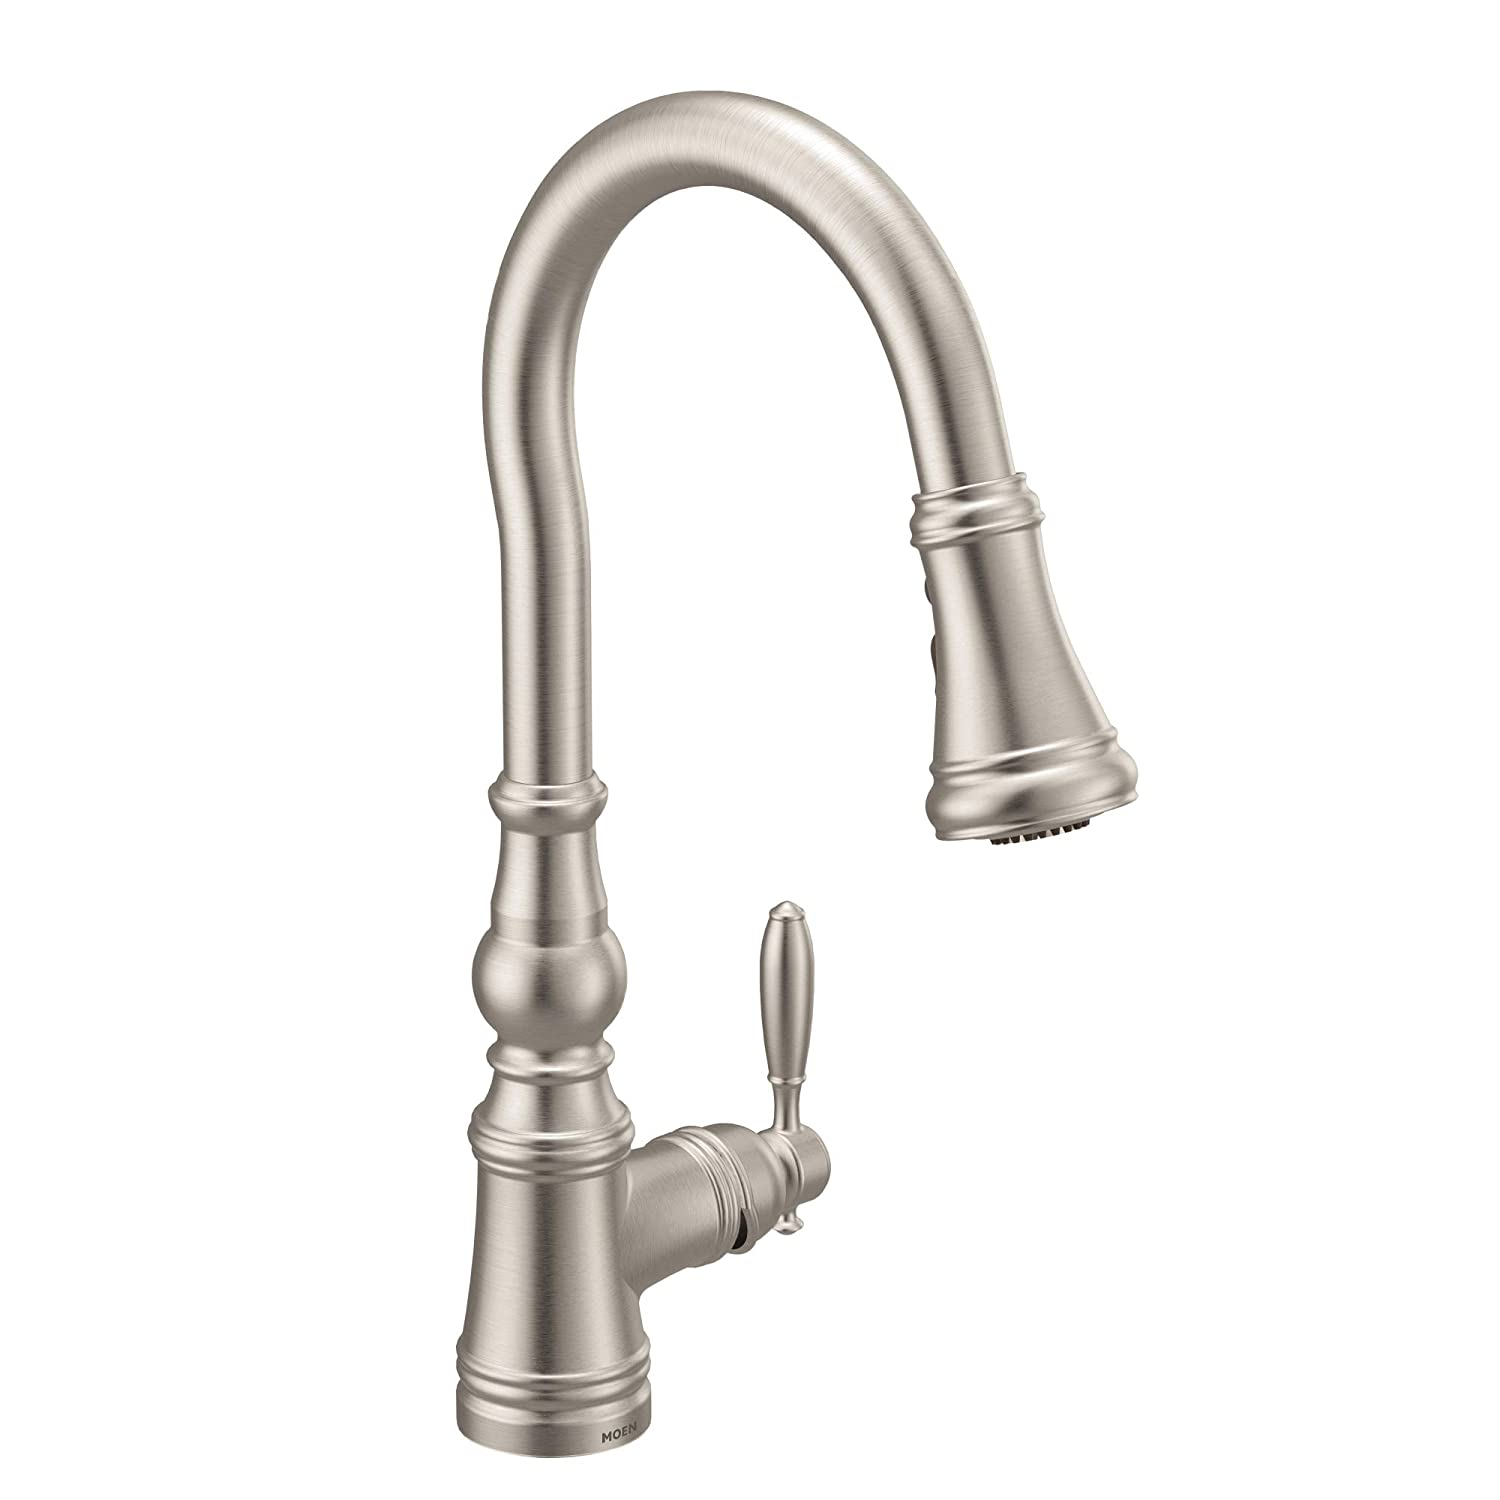 Moen S73004SRS Weymouth Shepherd's Hook Pulldown Kitchen Faucet Featuring Metal Wand with Power Boost, Spot Resist Stainless